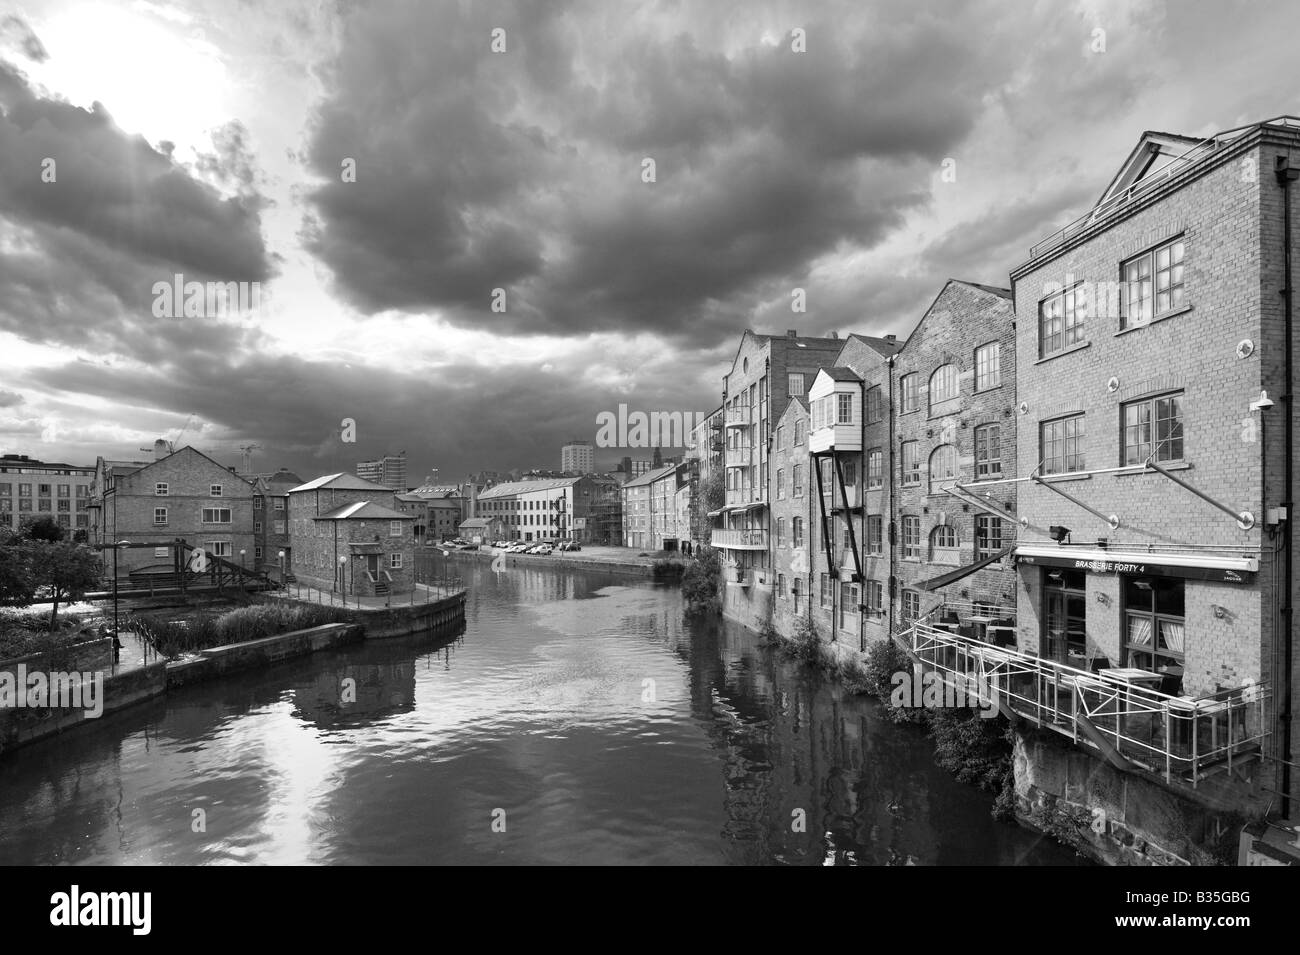 River Aire at Brewery Wharf, Leeds, West Yorkshire, England - Stock Image